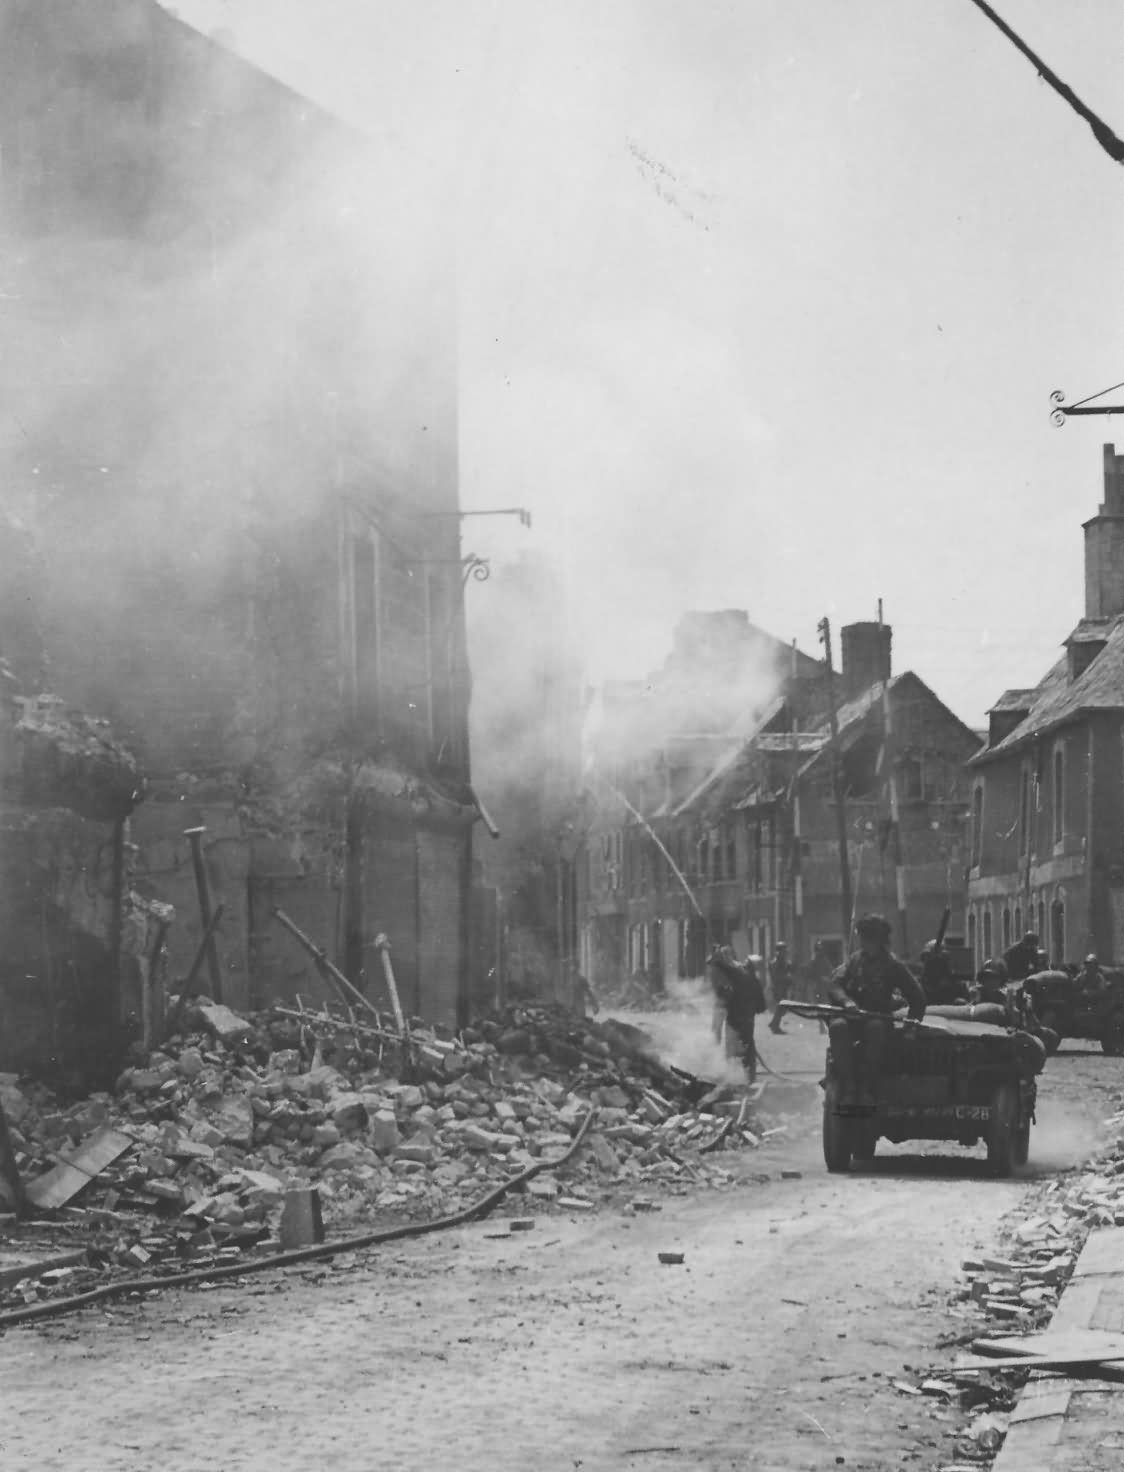 Photo Fireman Put Out Fire in Carentan Normandy France 1944